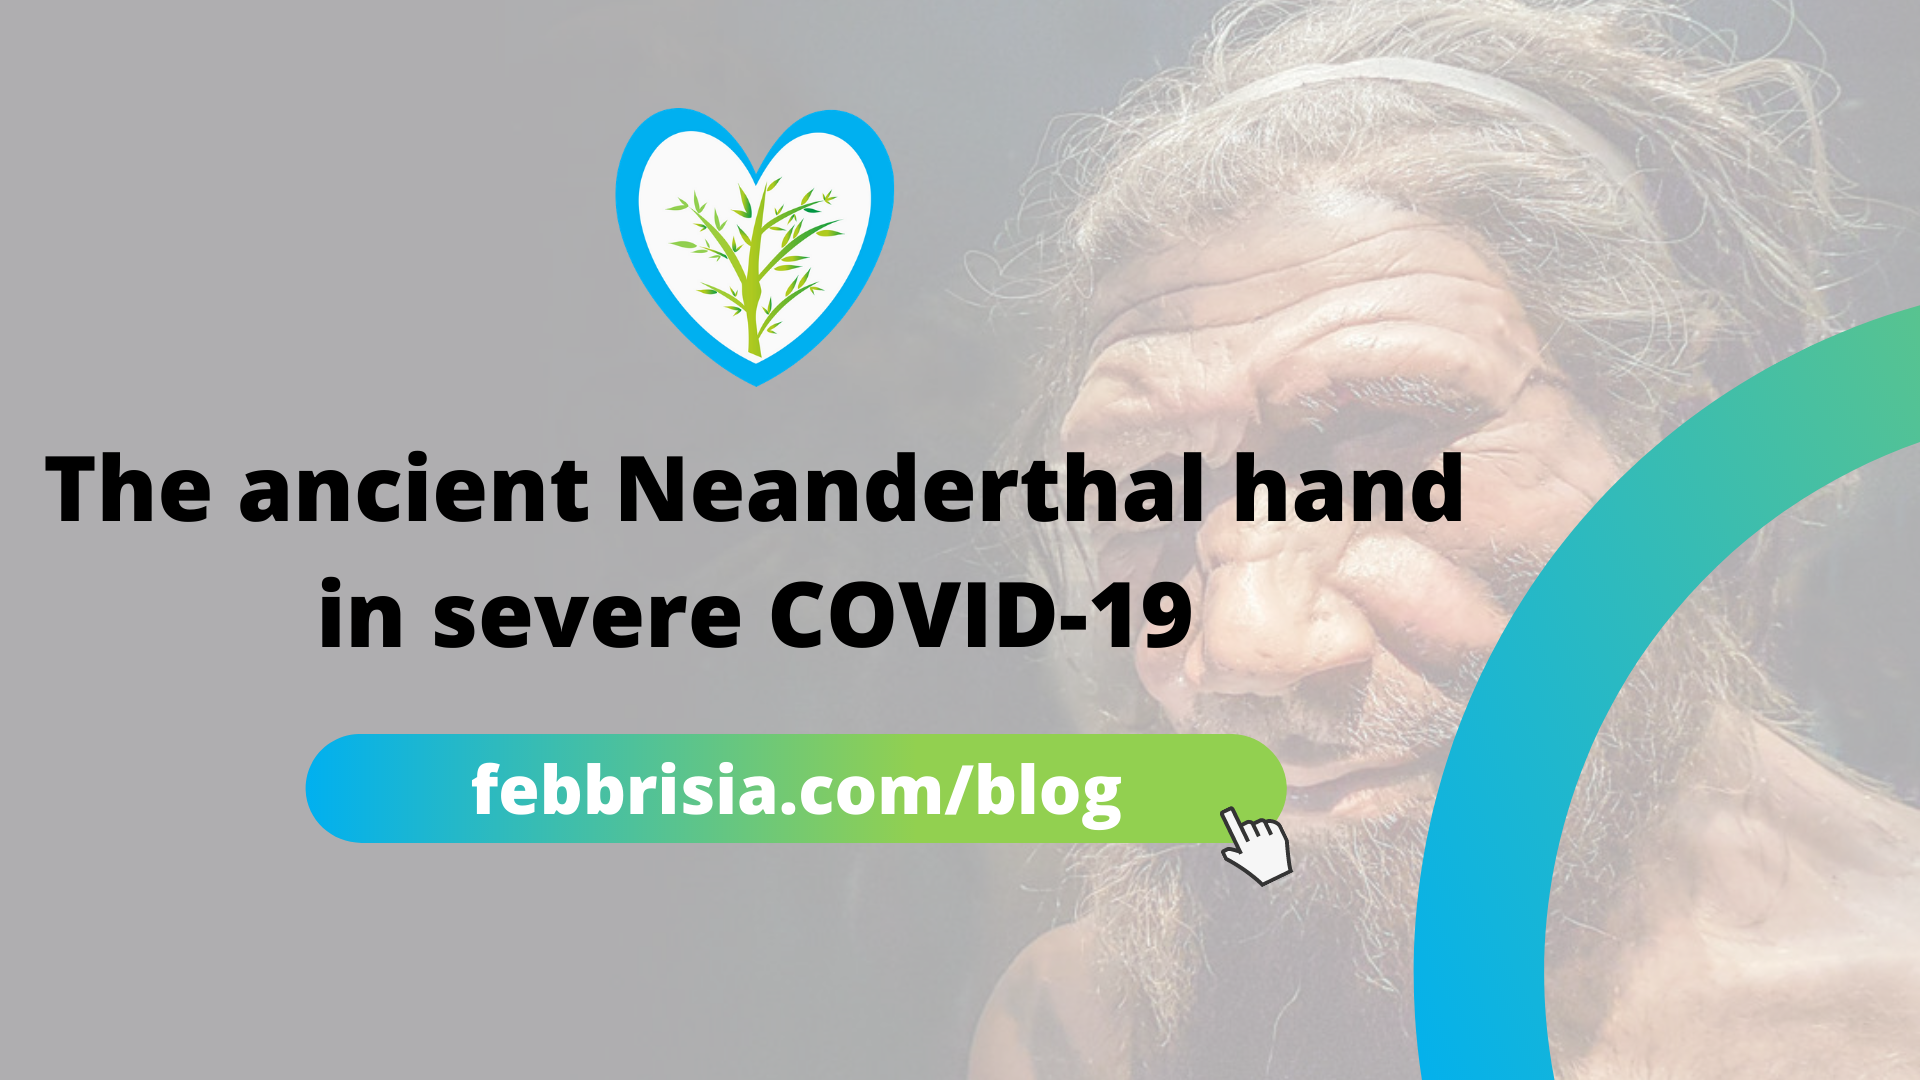 The ancient Neanderthal hand in severe COVID-19